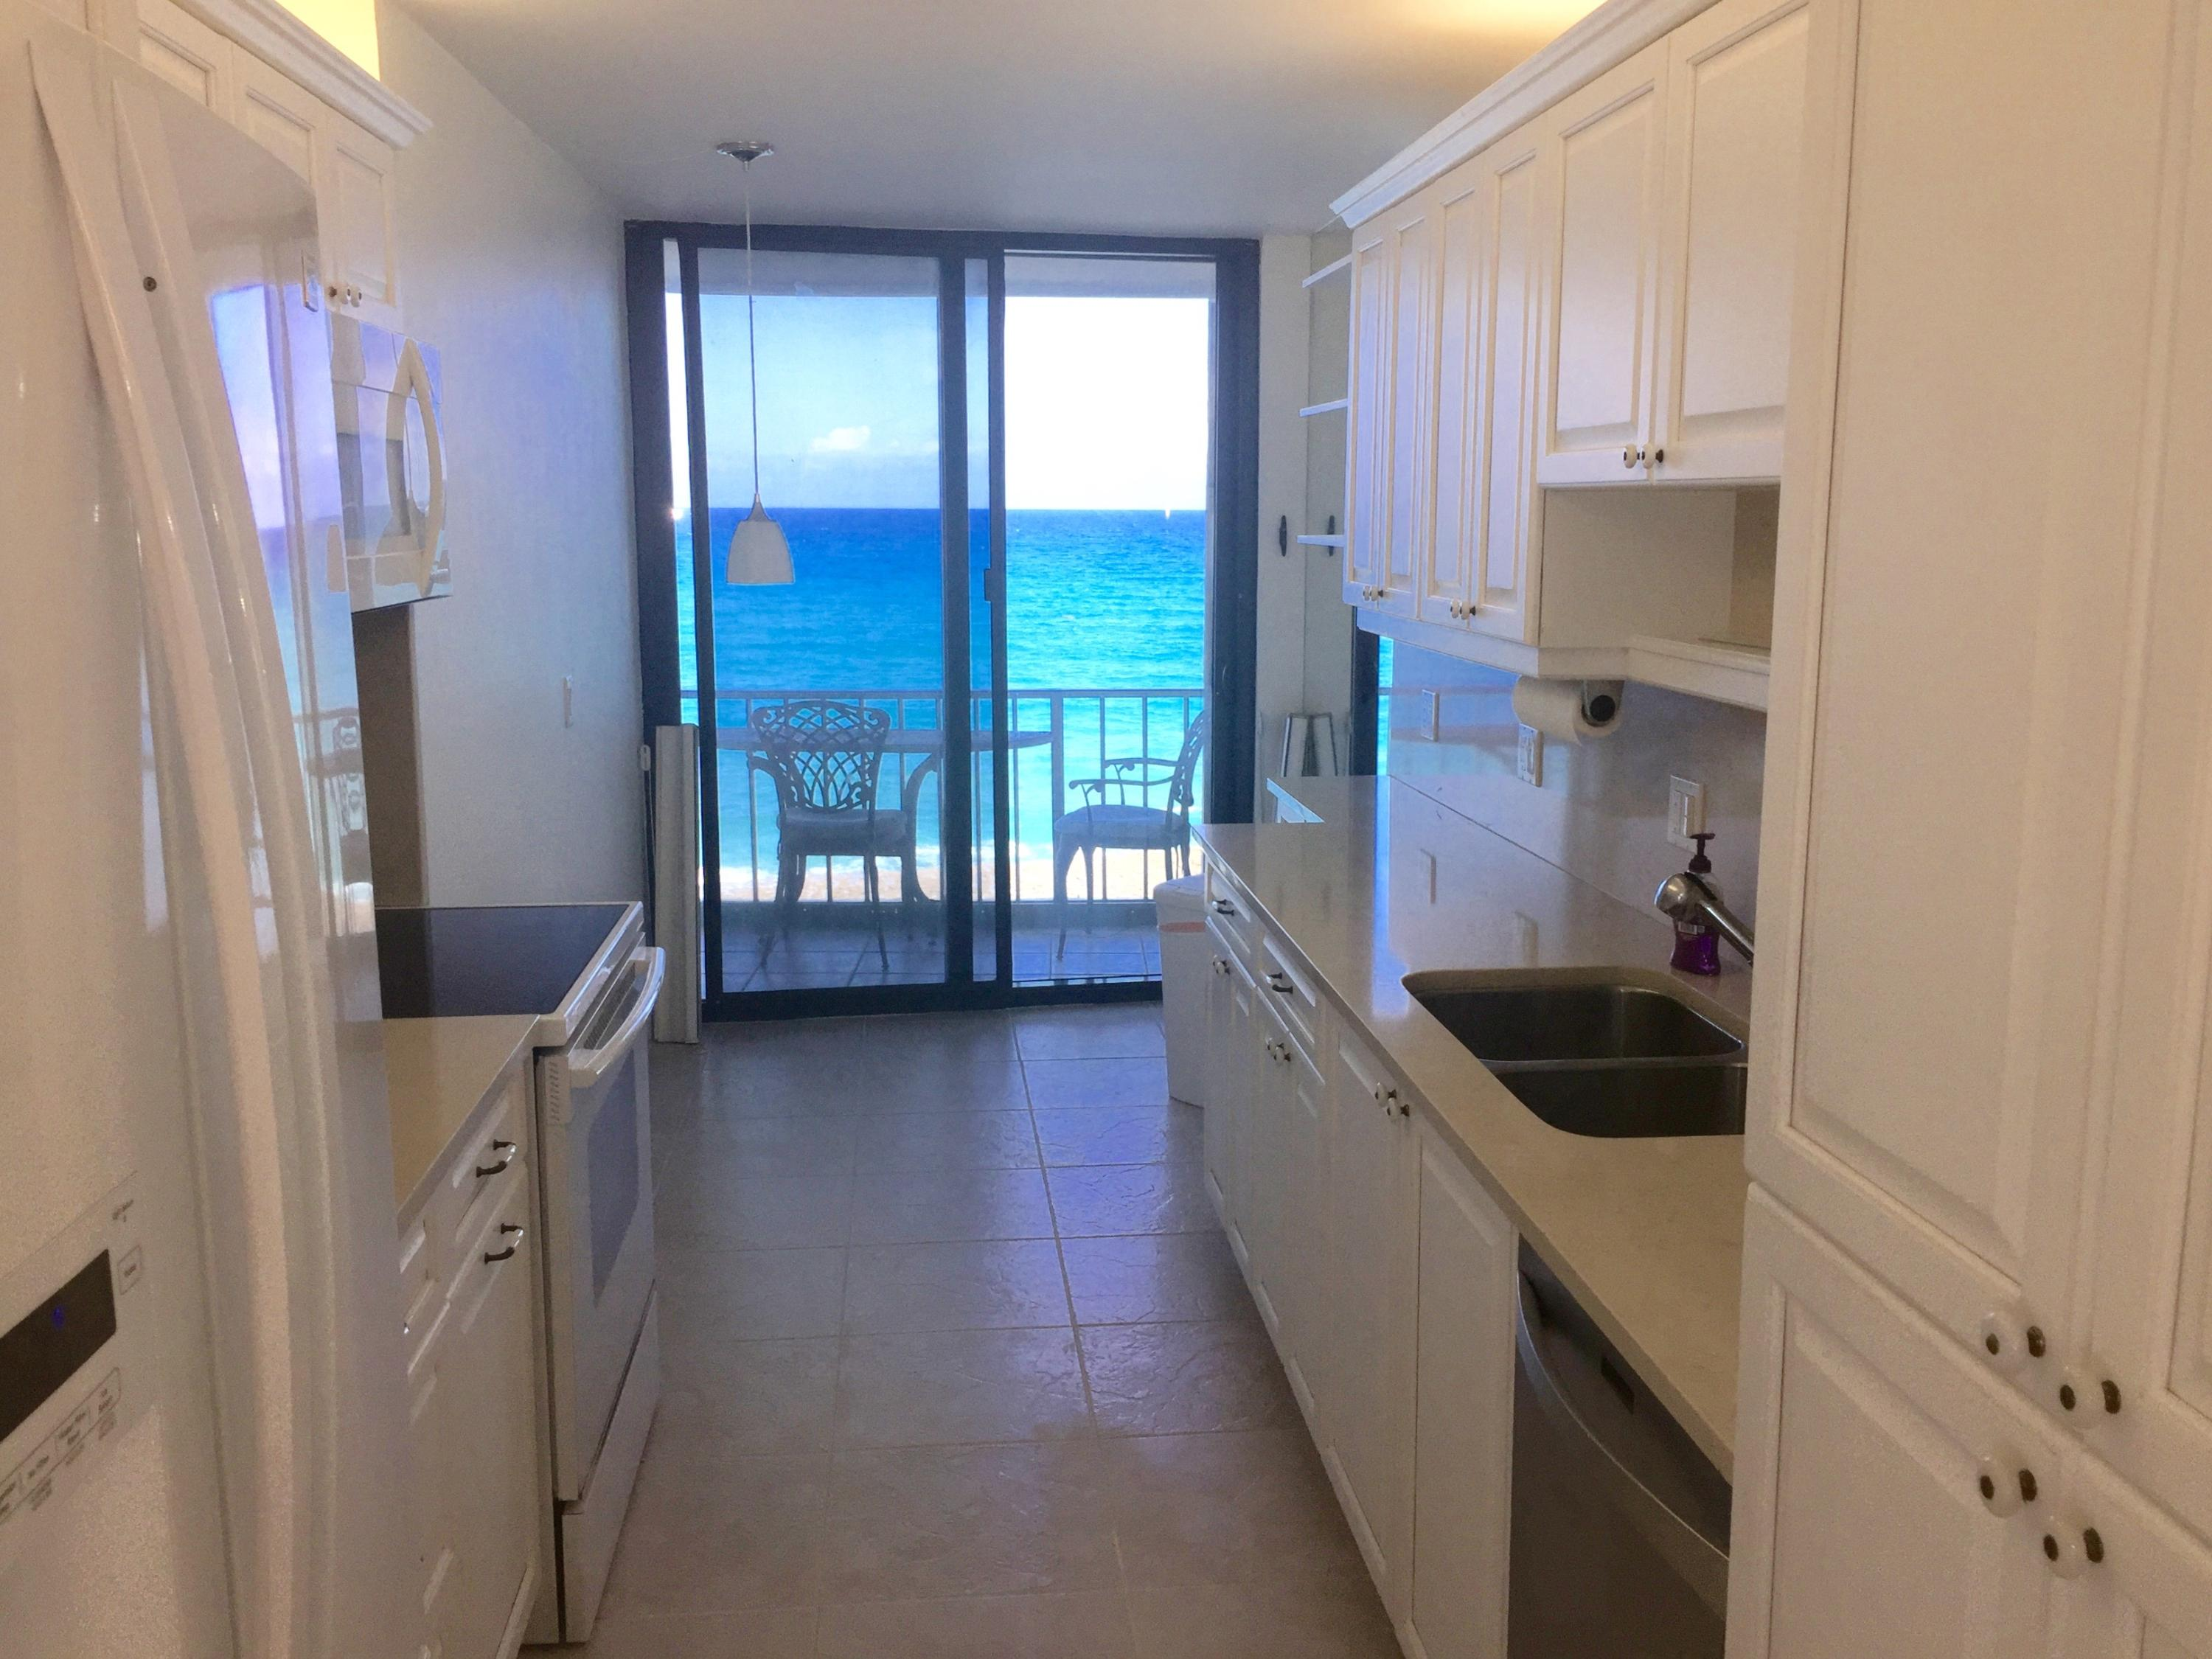 KITCHEN OCEAN BALCONY